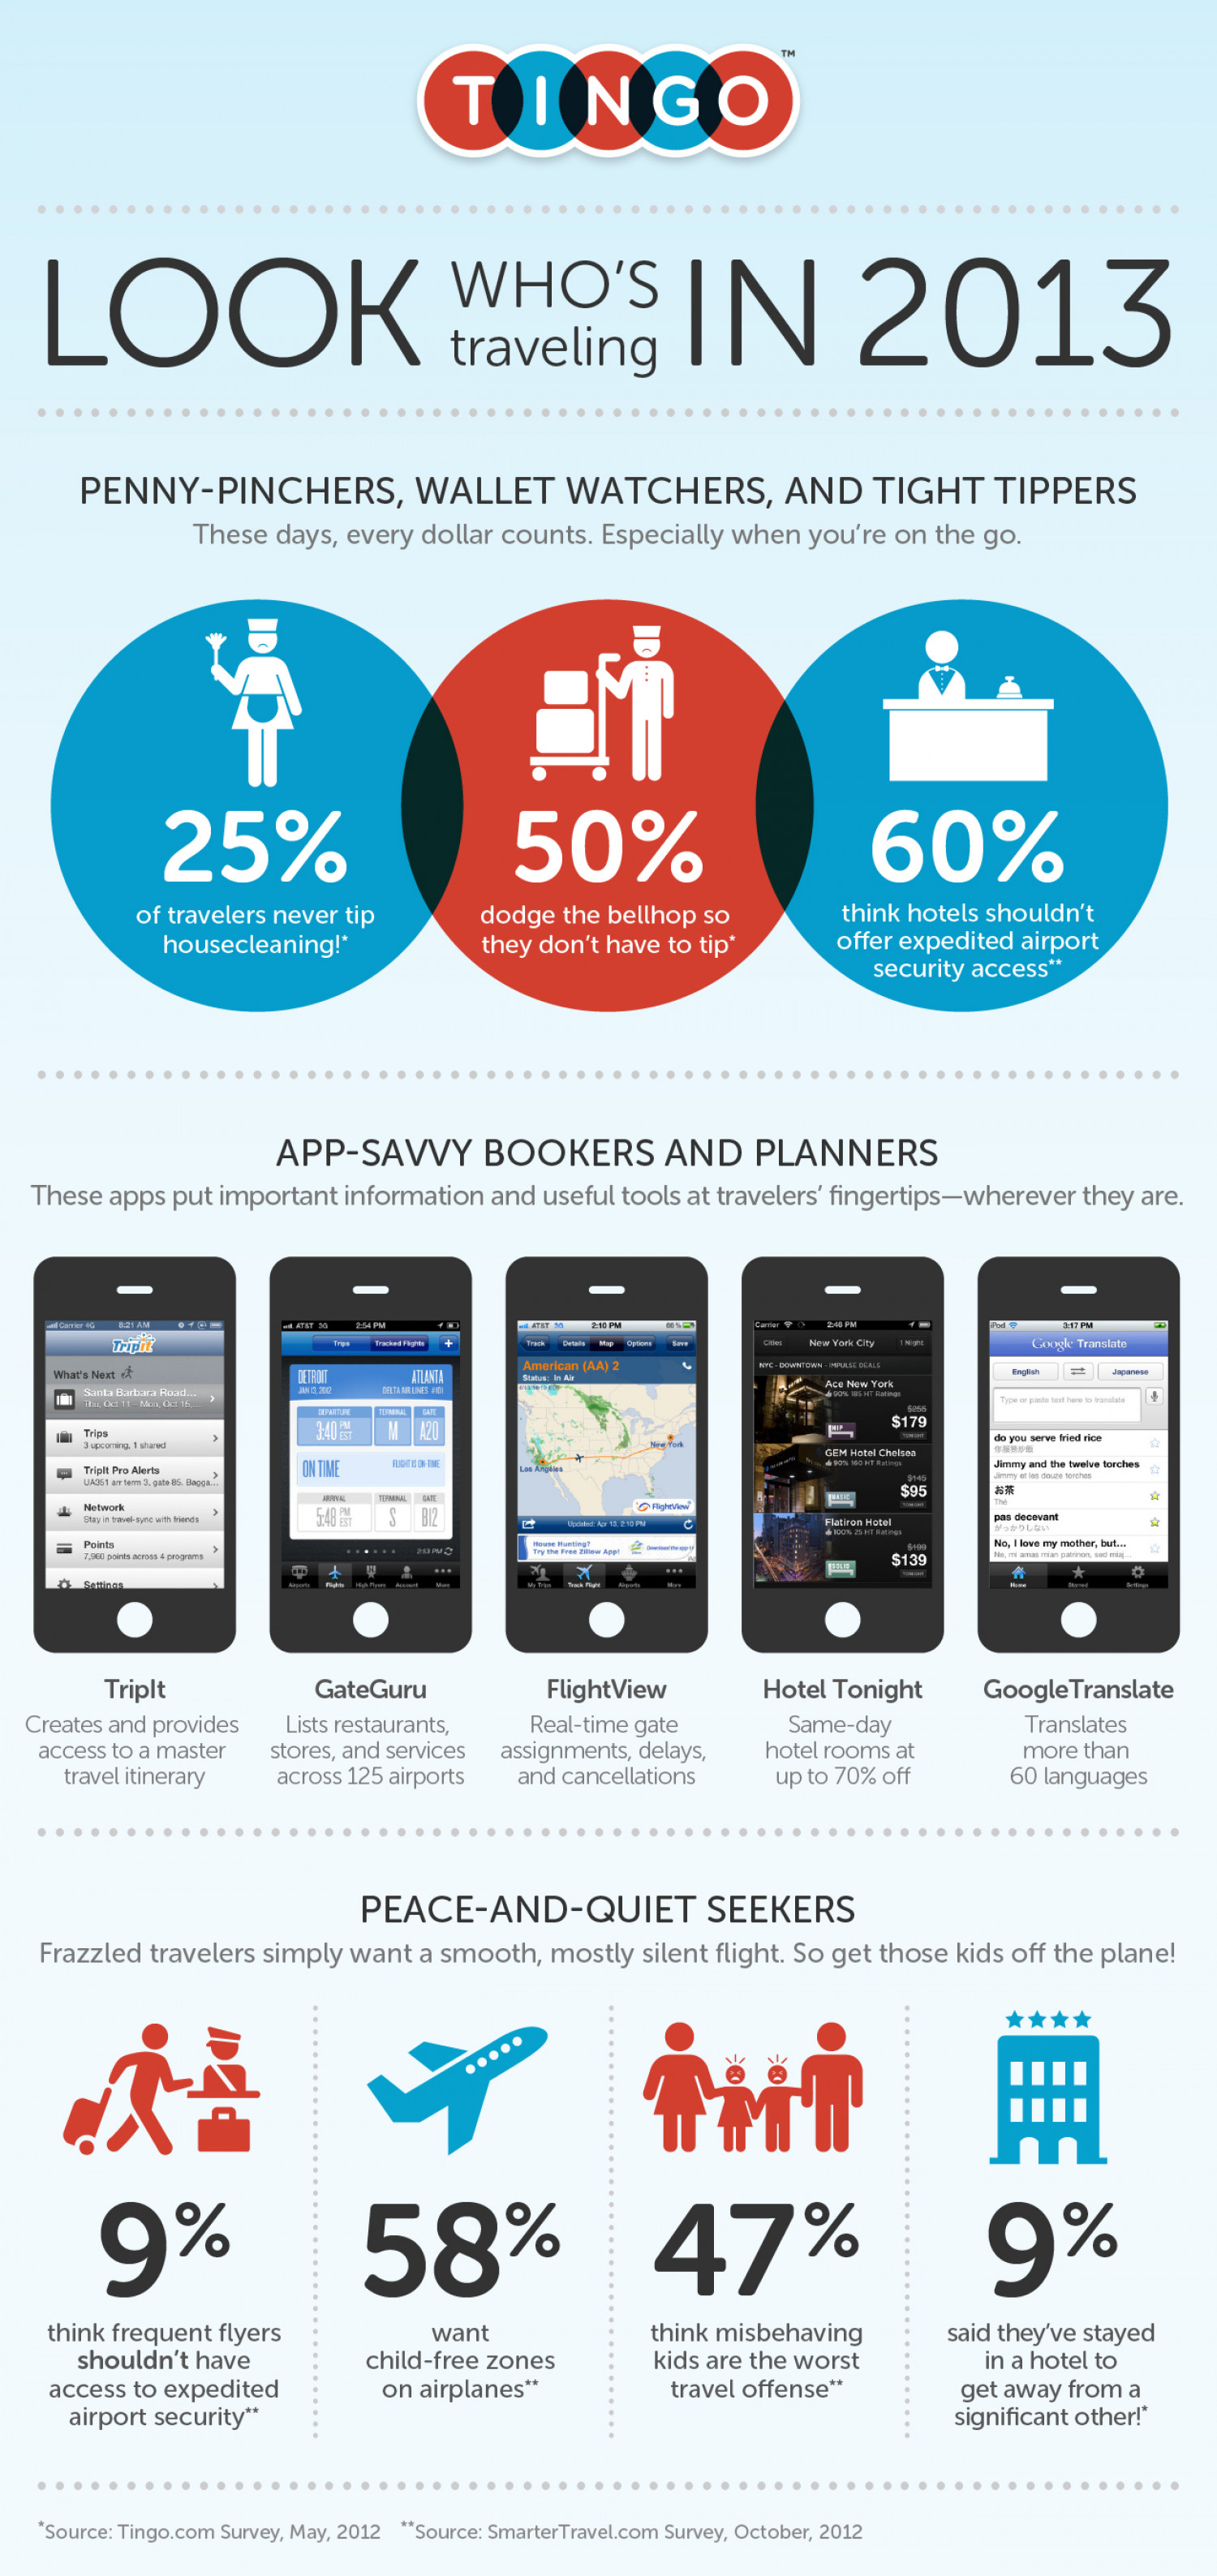 Travel Behavior in 2013 Infographic